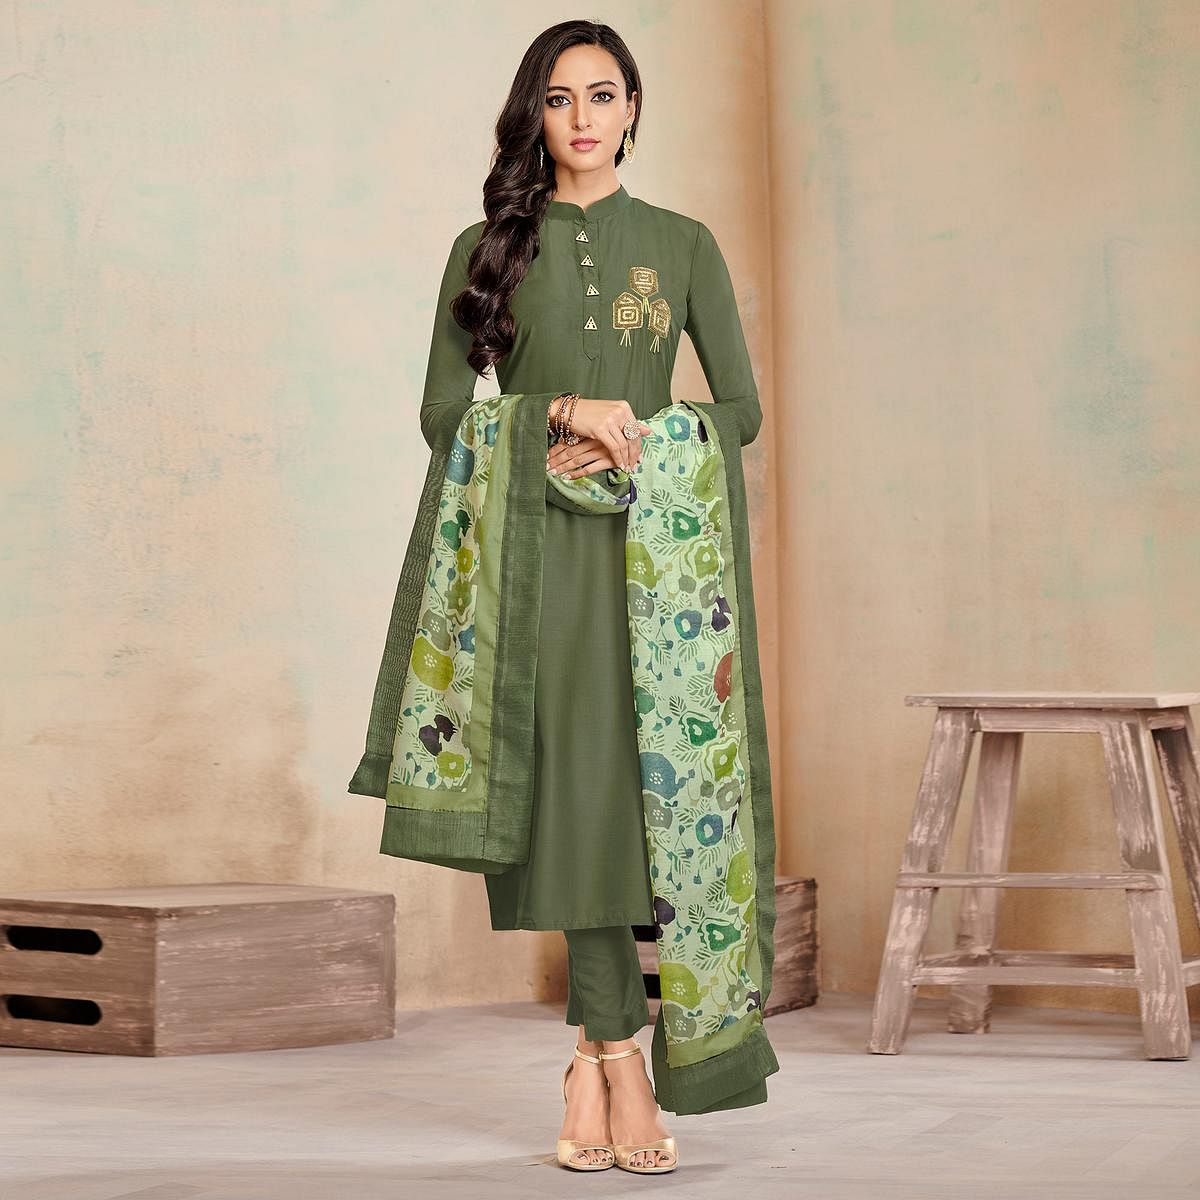 Captivating Olive Green Colored Partywear Cotton Suit